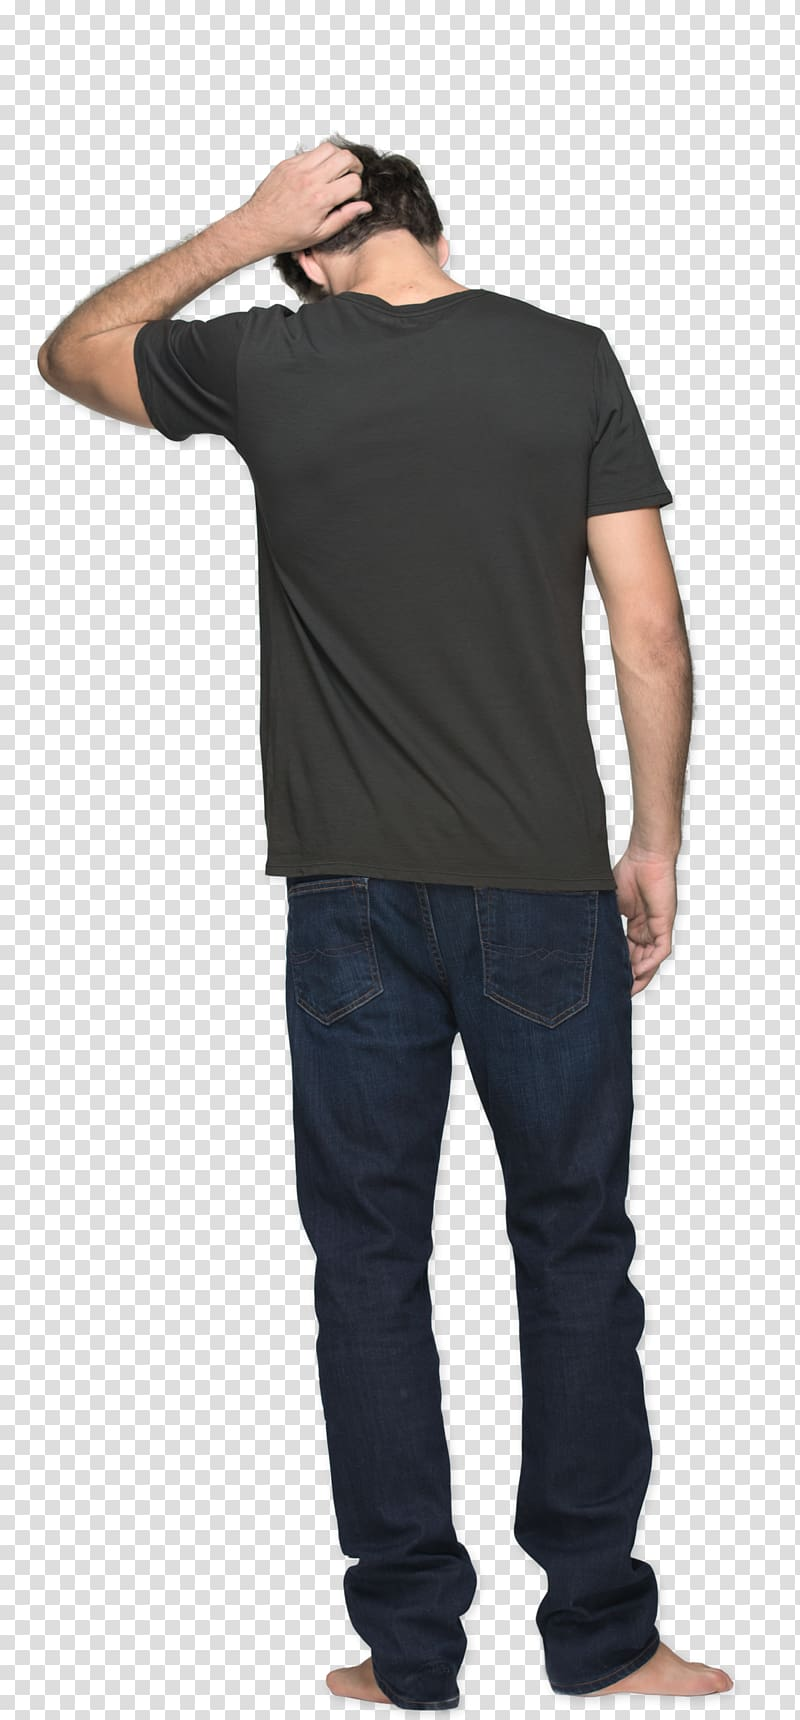 University t-shirt day with jeans kids clipart picture black and white download T-shirt Sleeve Overland Park Convention Center Top Human ... picture black and white download